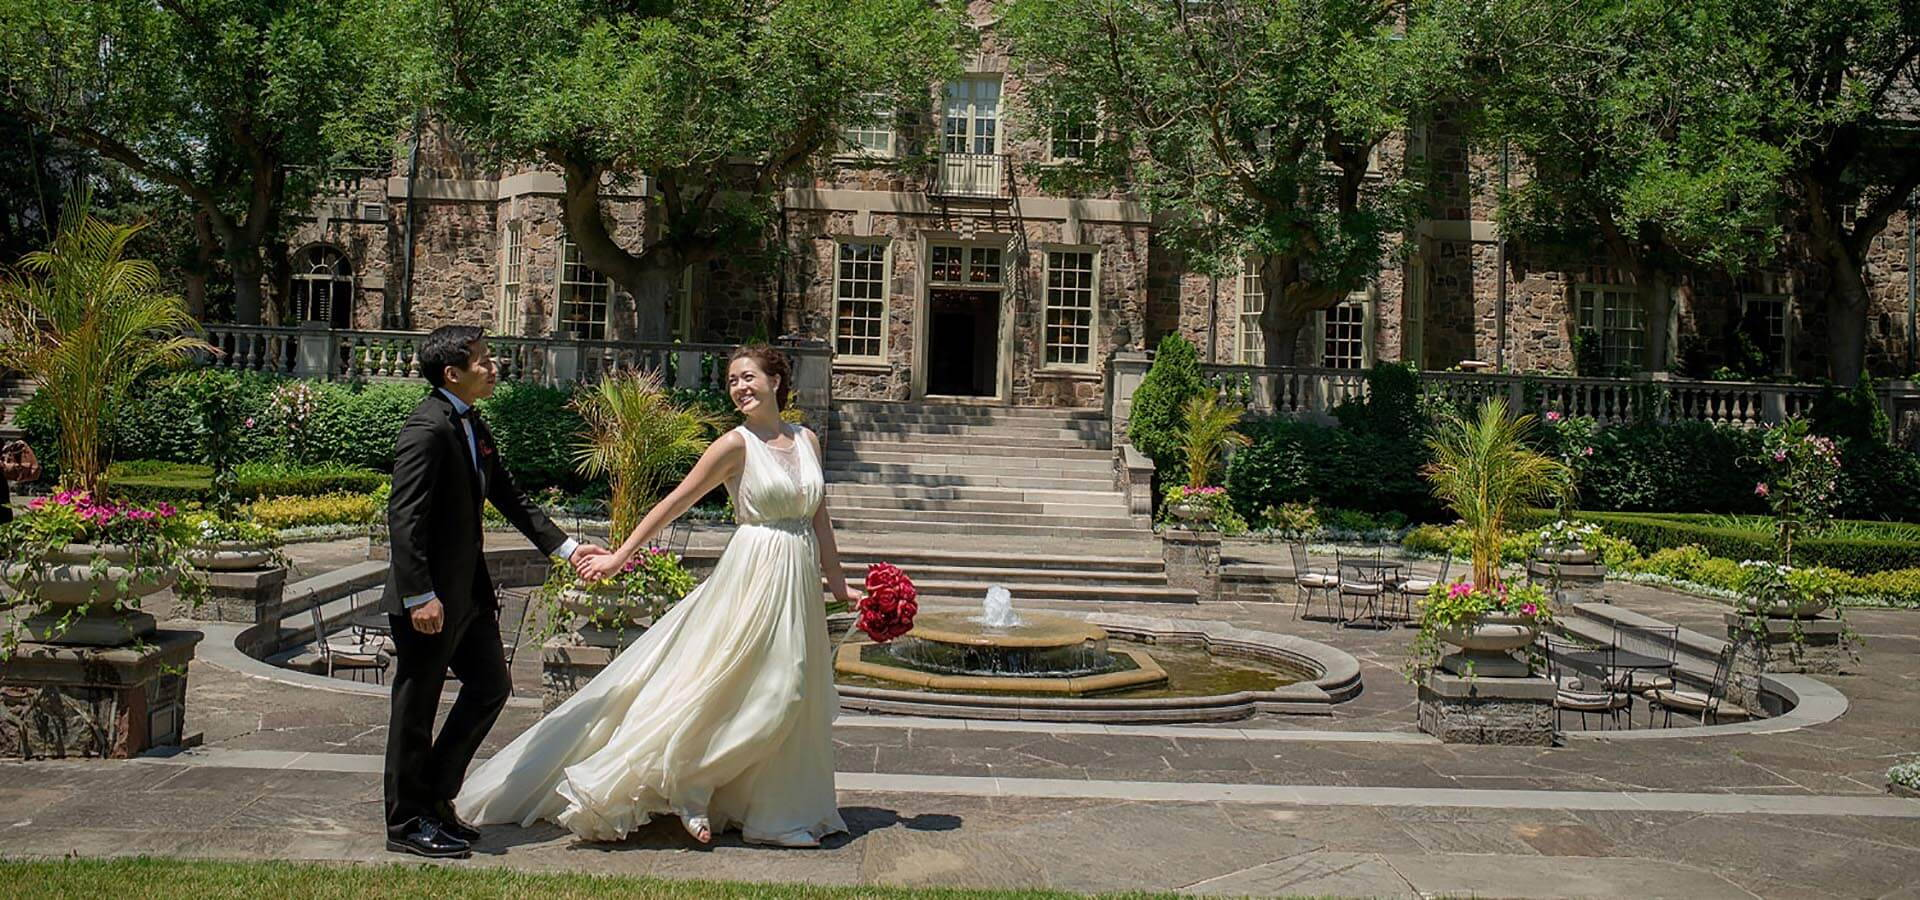 Hero image for Amy and Kiet's Sophisticated Art Deco Wedding at Eglinton Grand